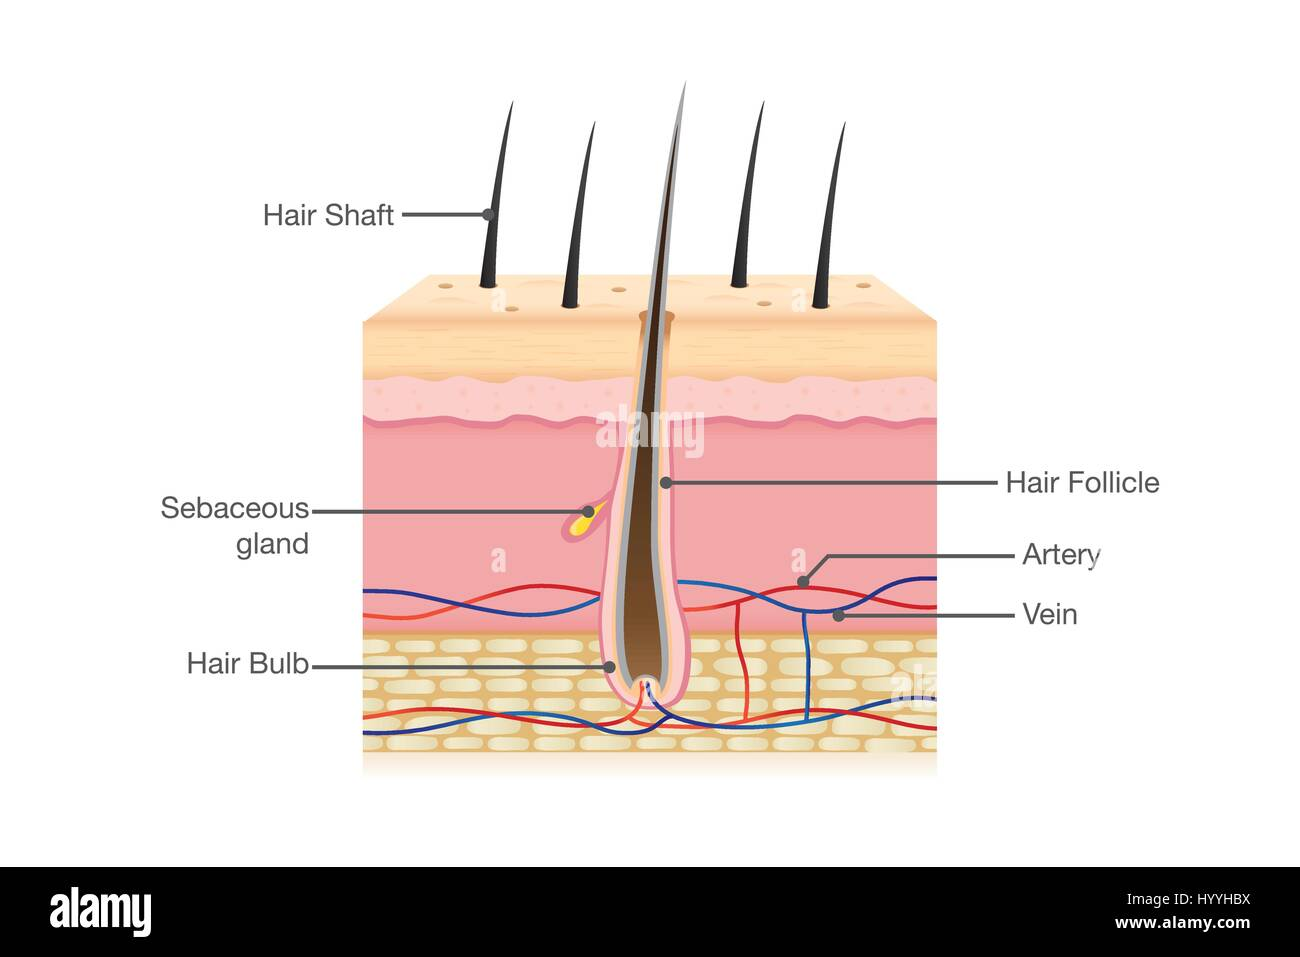 Human Hair Anatomy Stock Vector Art & Illustration, Vector Image ...